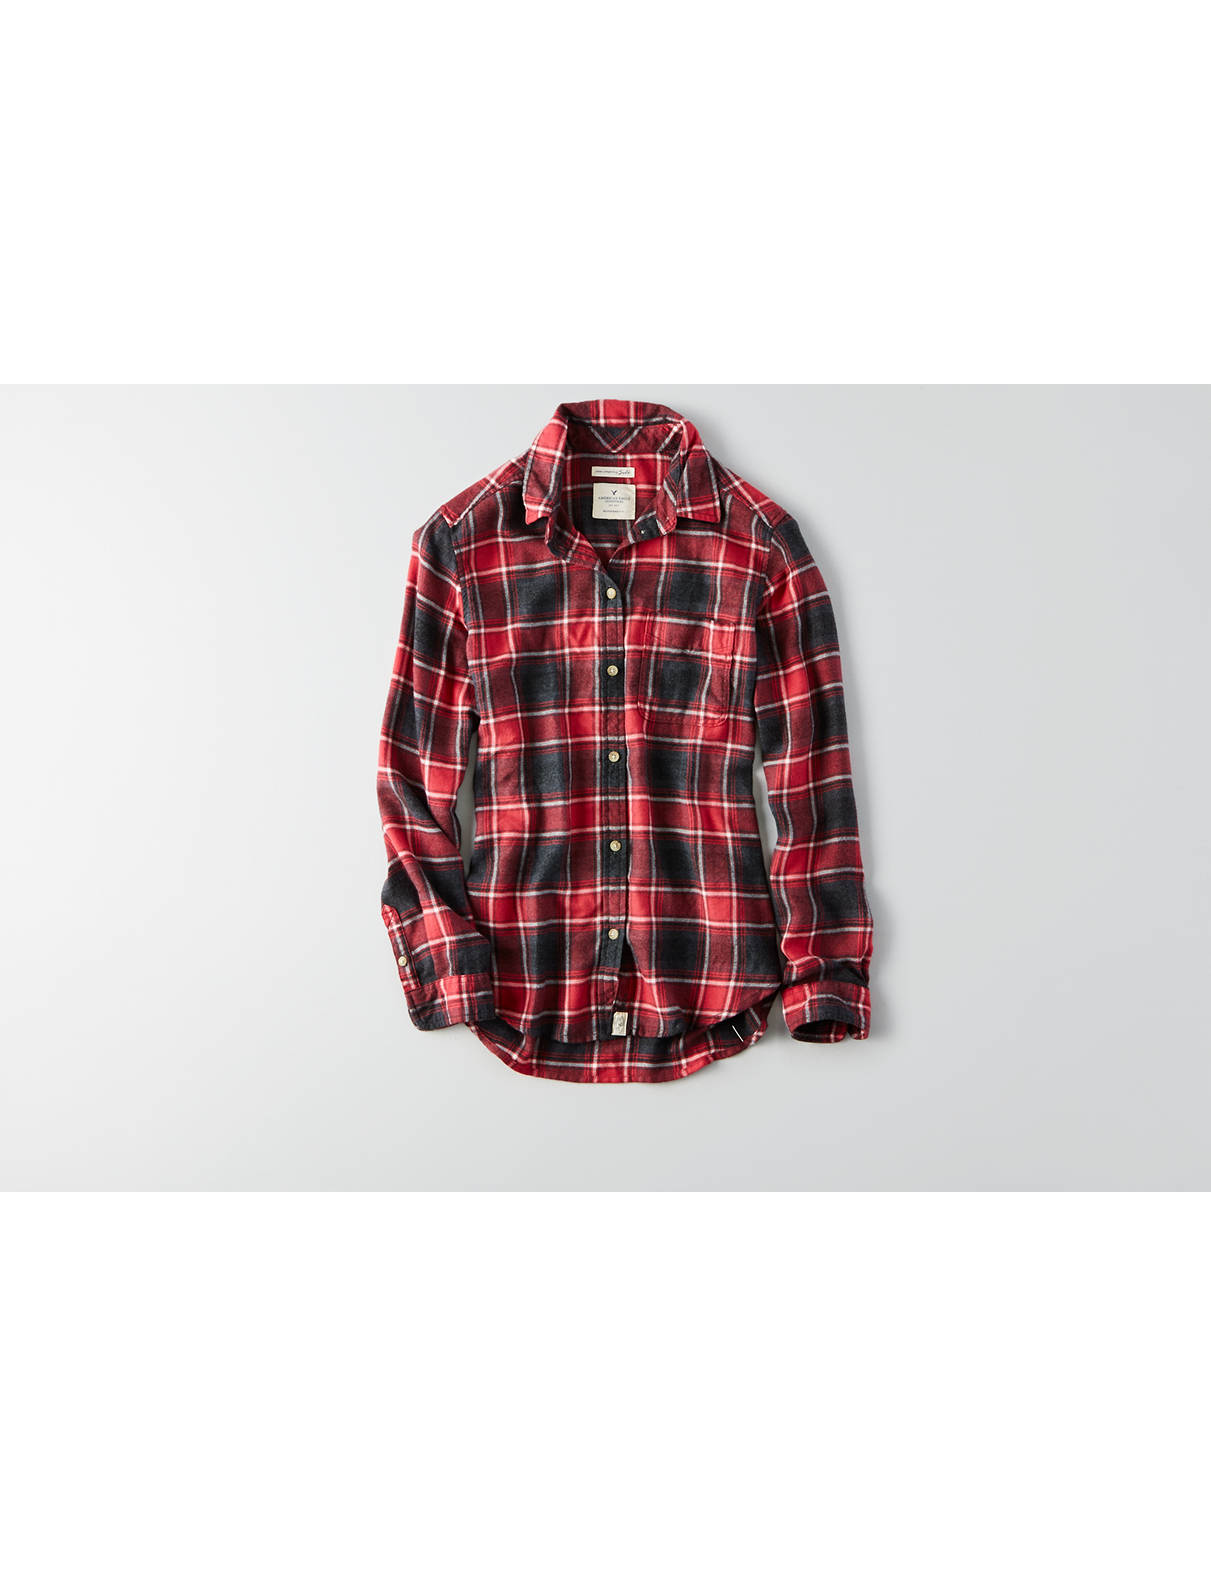 Flannels & Plaid Shirts for Women | American Eagle Outfitters